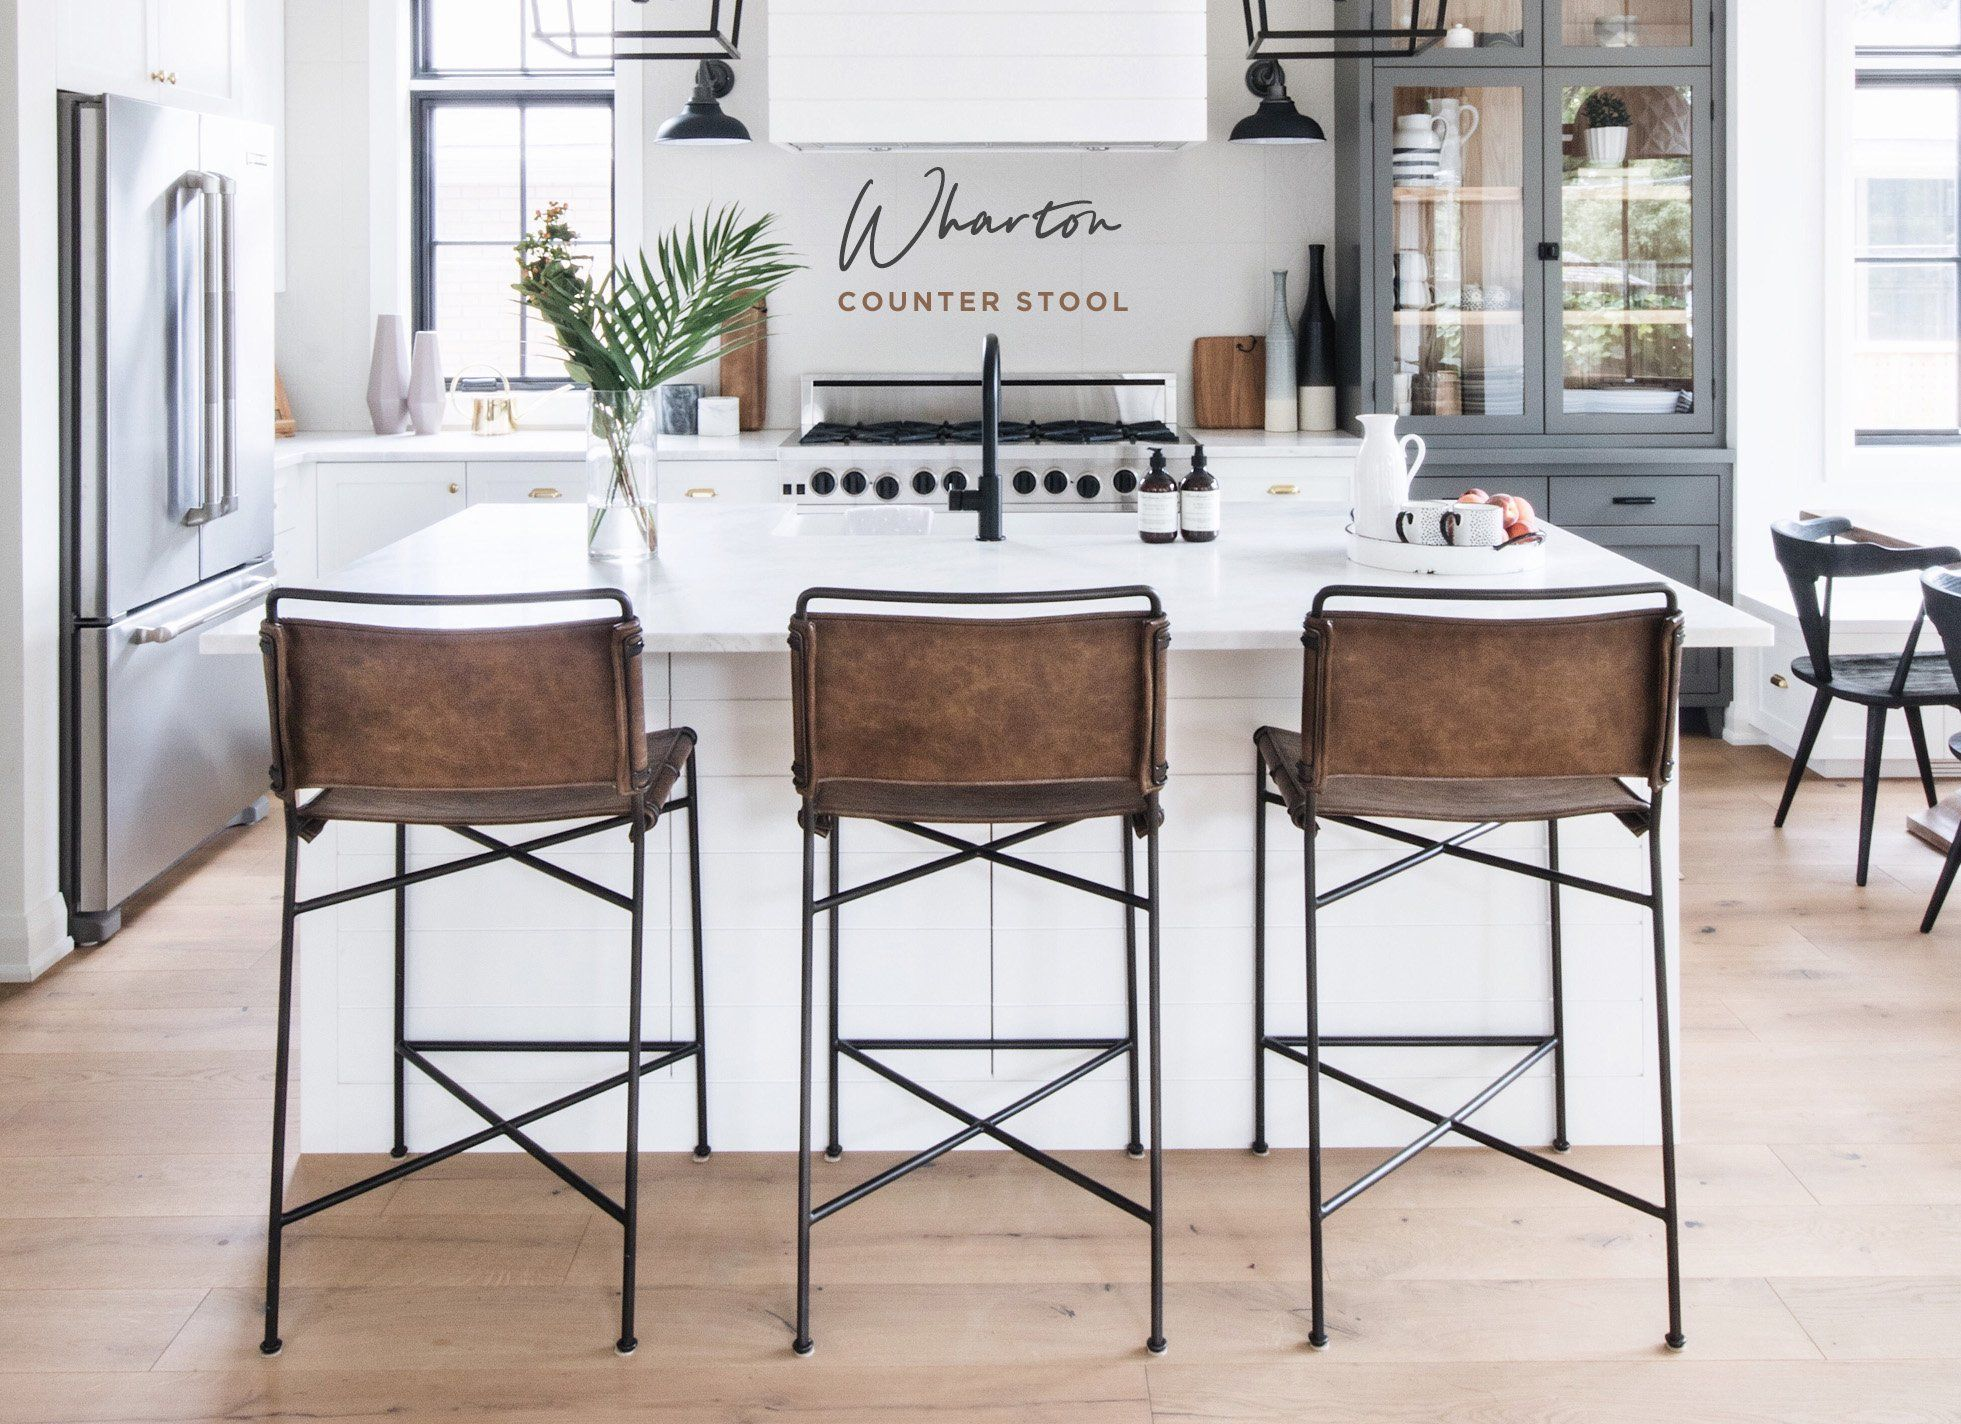 The Wharton Counter Stool From Ldshoppe Designer Curated